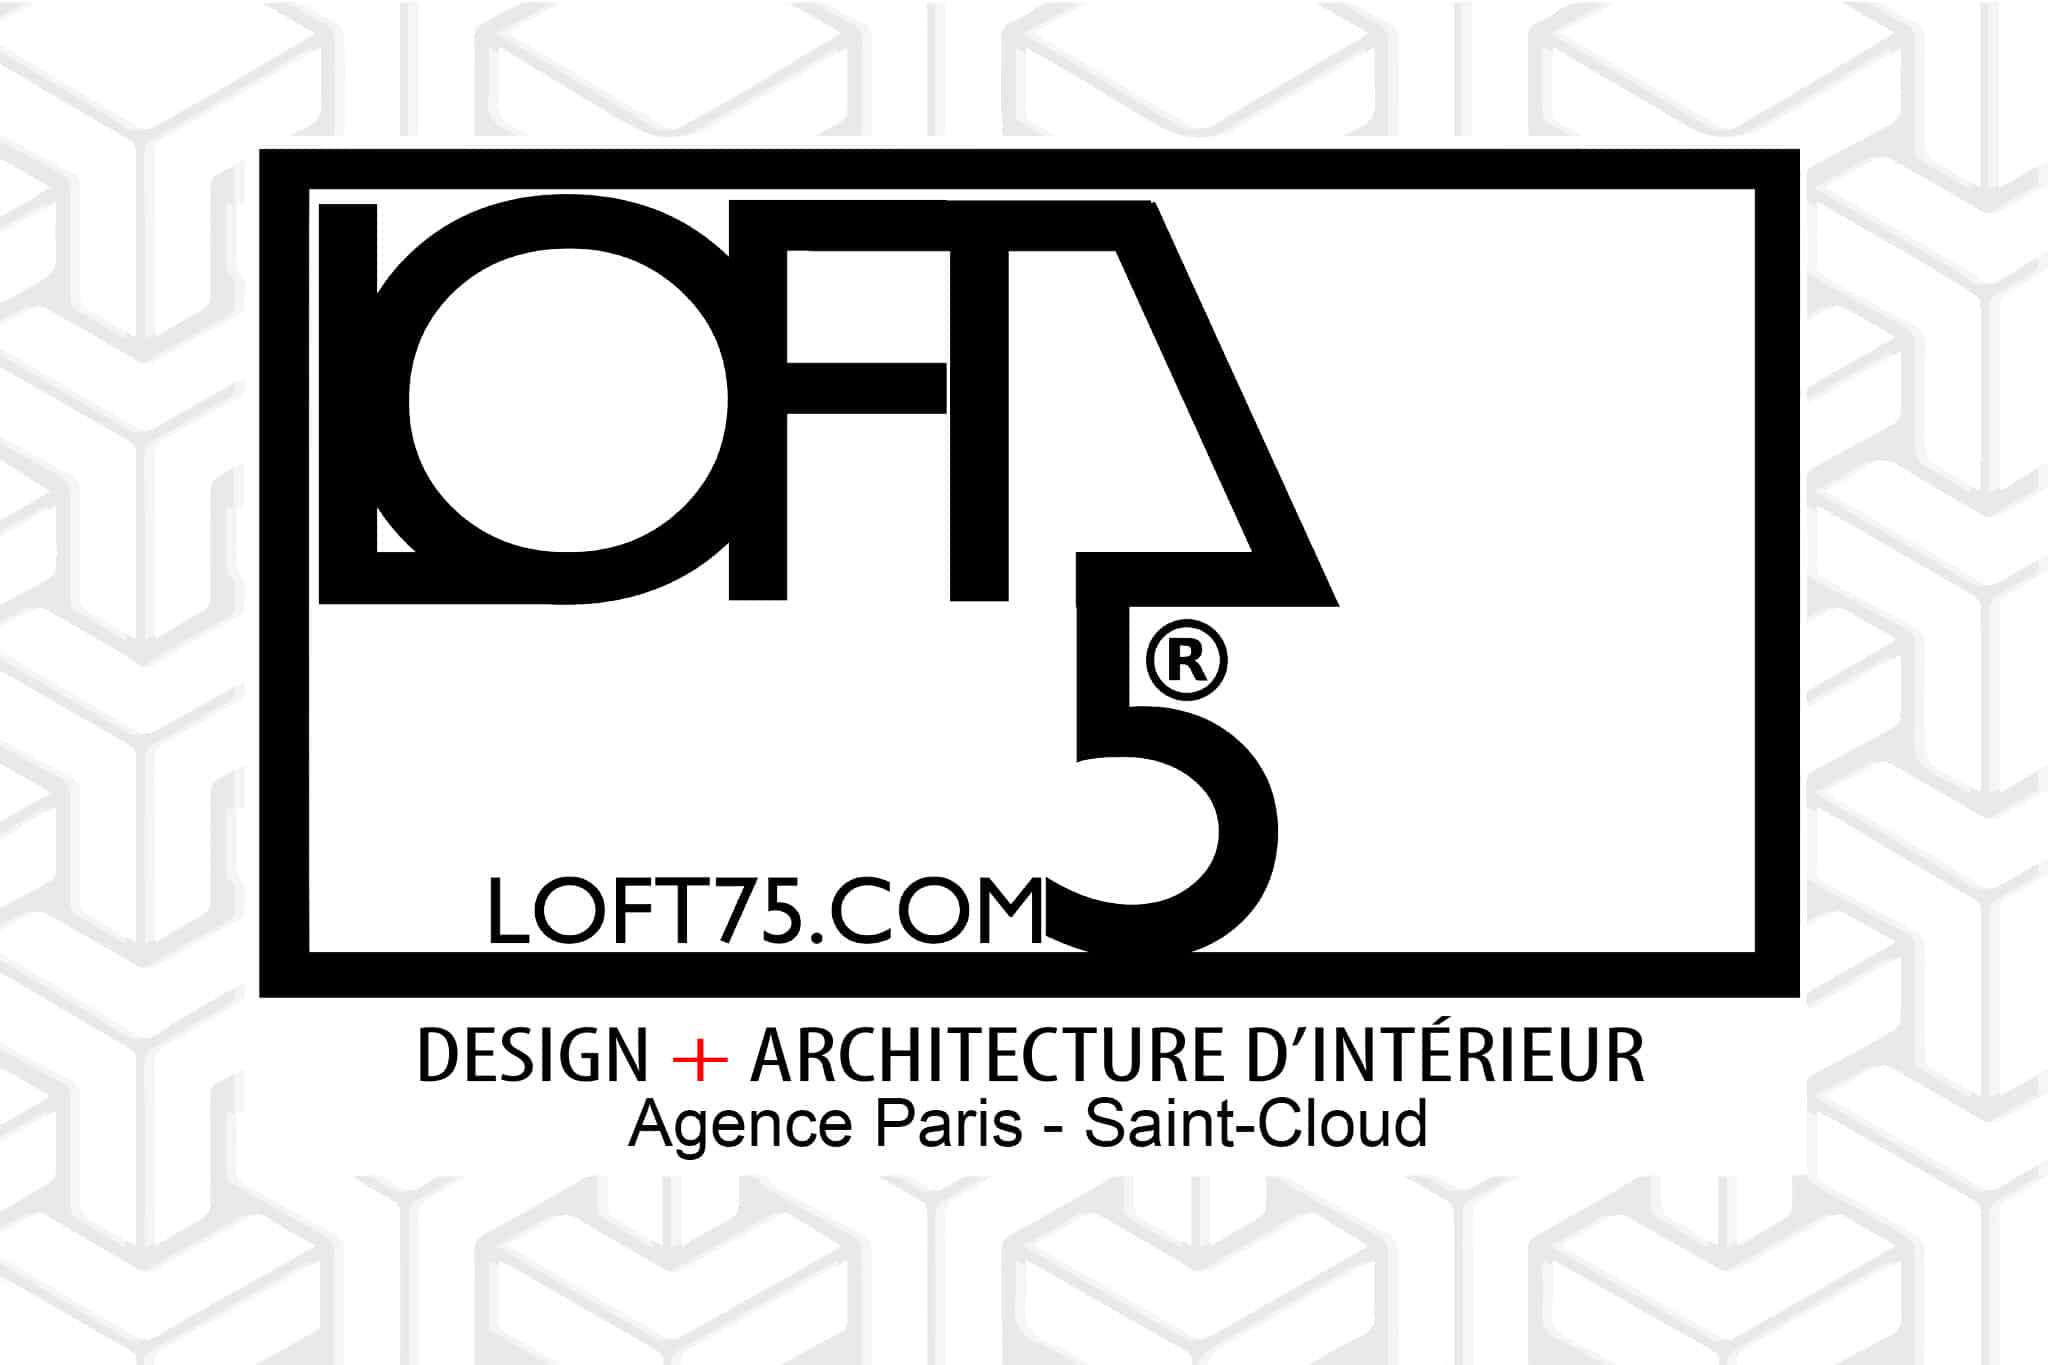 Agence Loft 75 Architecte d'Intérieur Décoration Design Paris - Saint-Cloud 92 Paris Centre 75